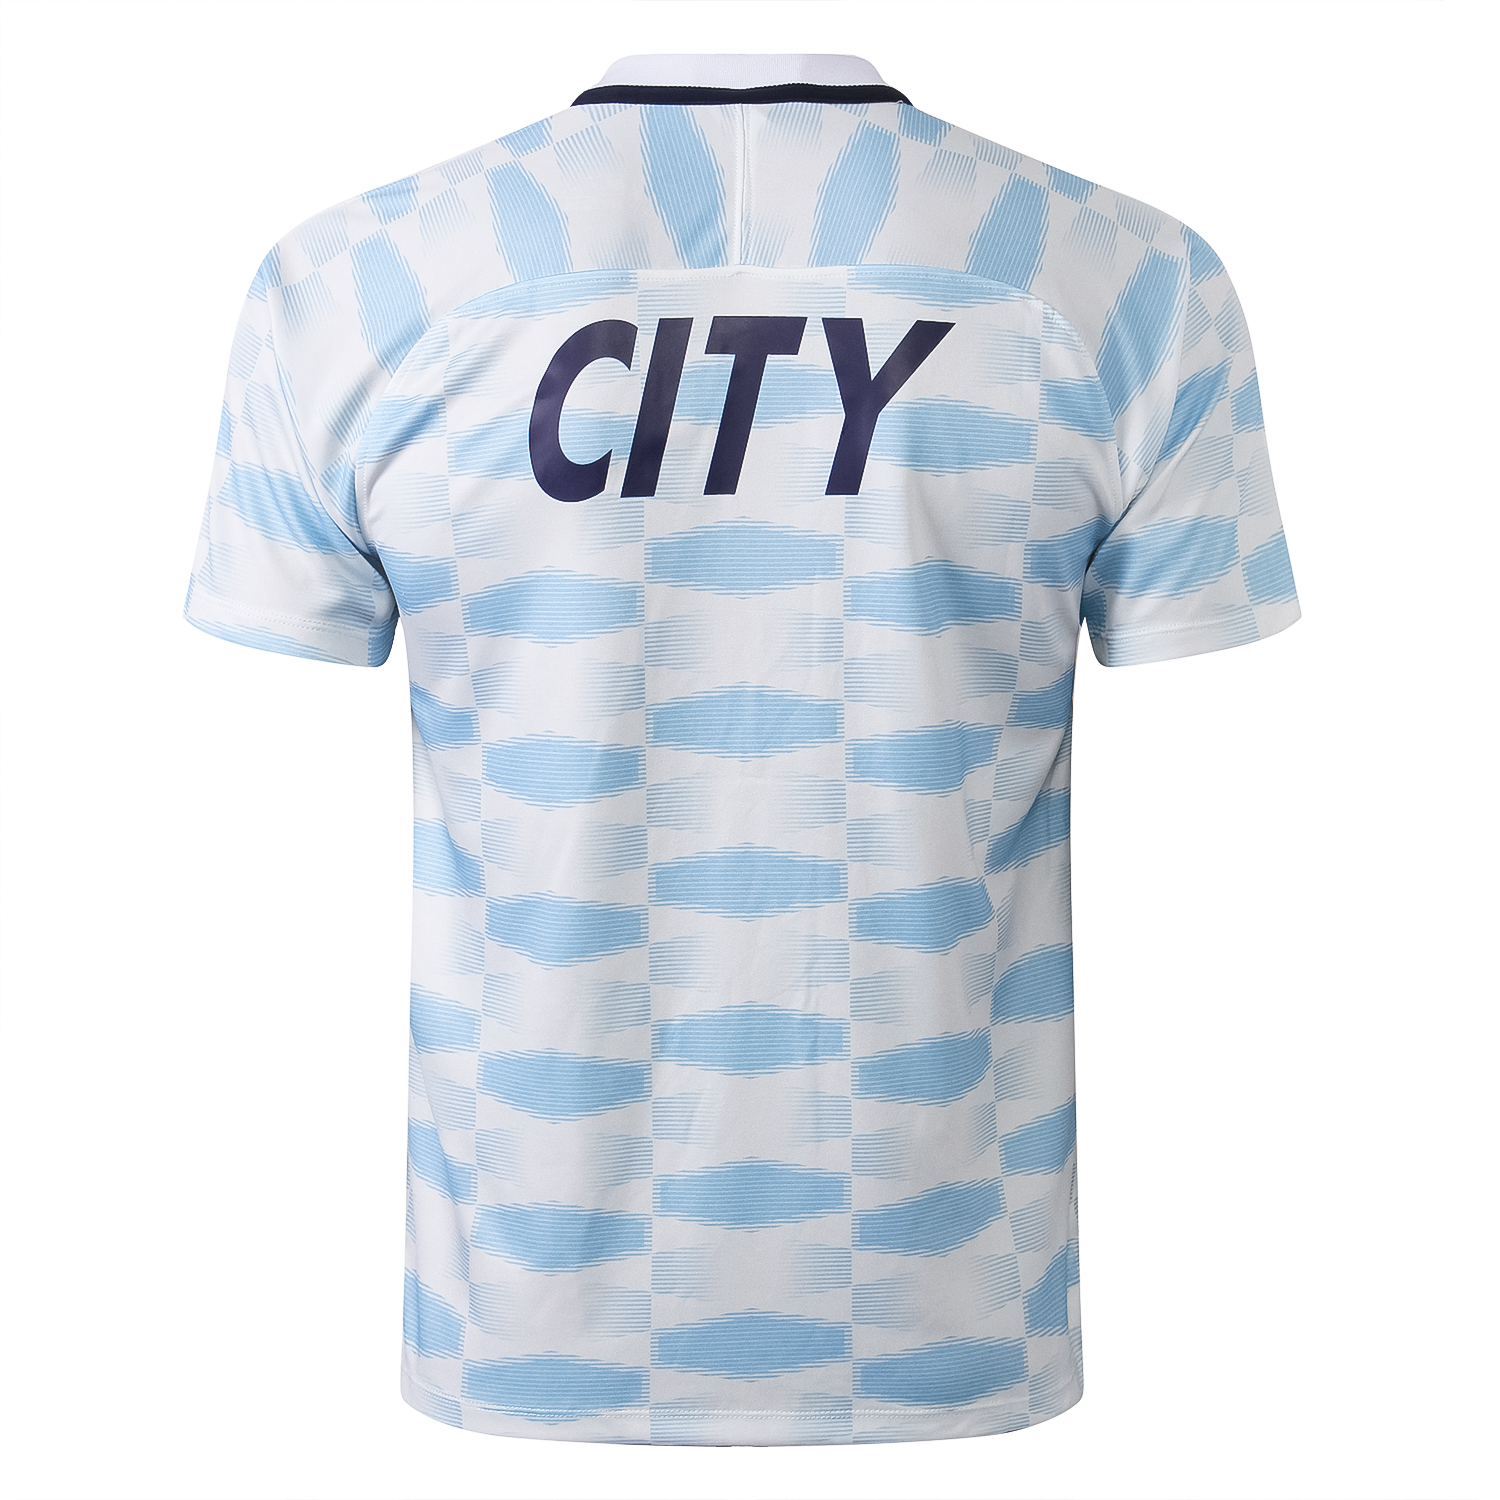 Yükle (1500x1500)Buy 18-19 Manchester City Training Jersey White for Custom  -EastySoccer18-19 Manchester City Training Jersey White. ... 3c4d02936